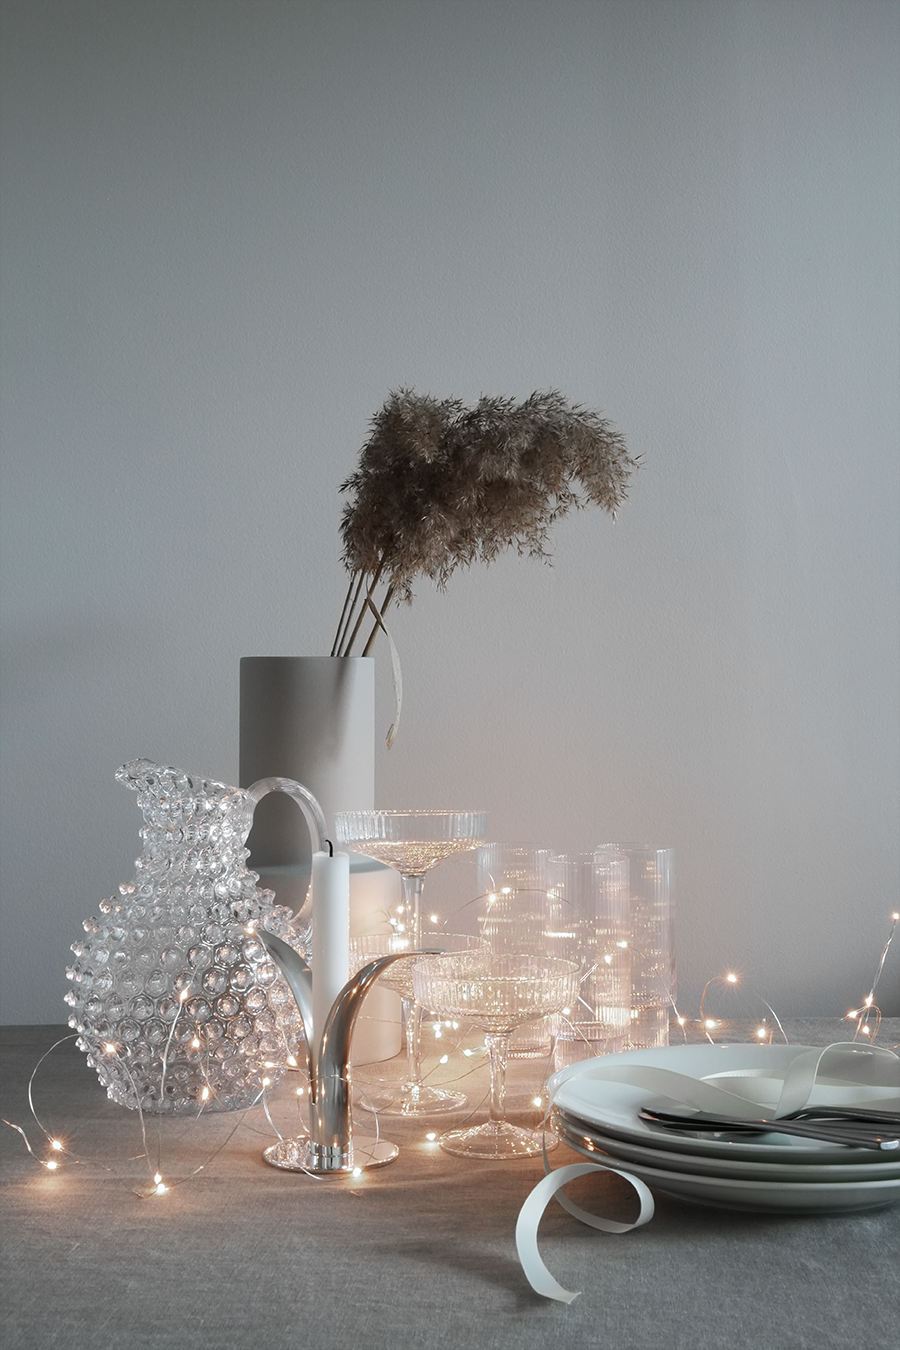 GET THE LOOK // EVERYTHING YOU NEED FOR THE NEW YEARS TABLE